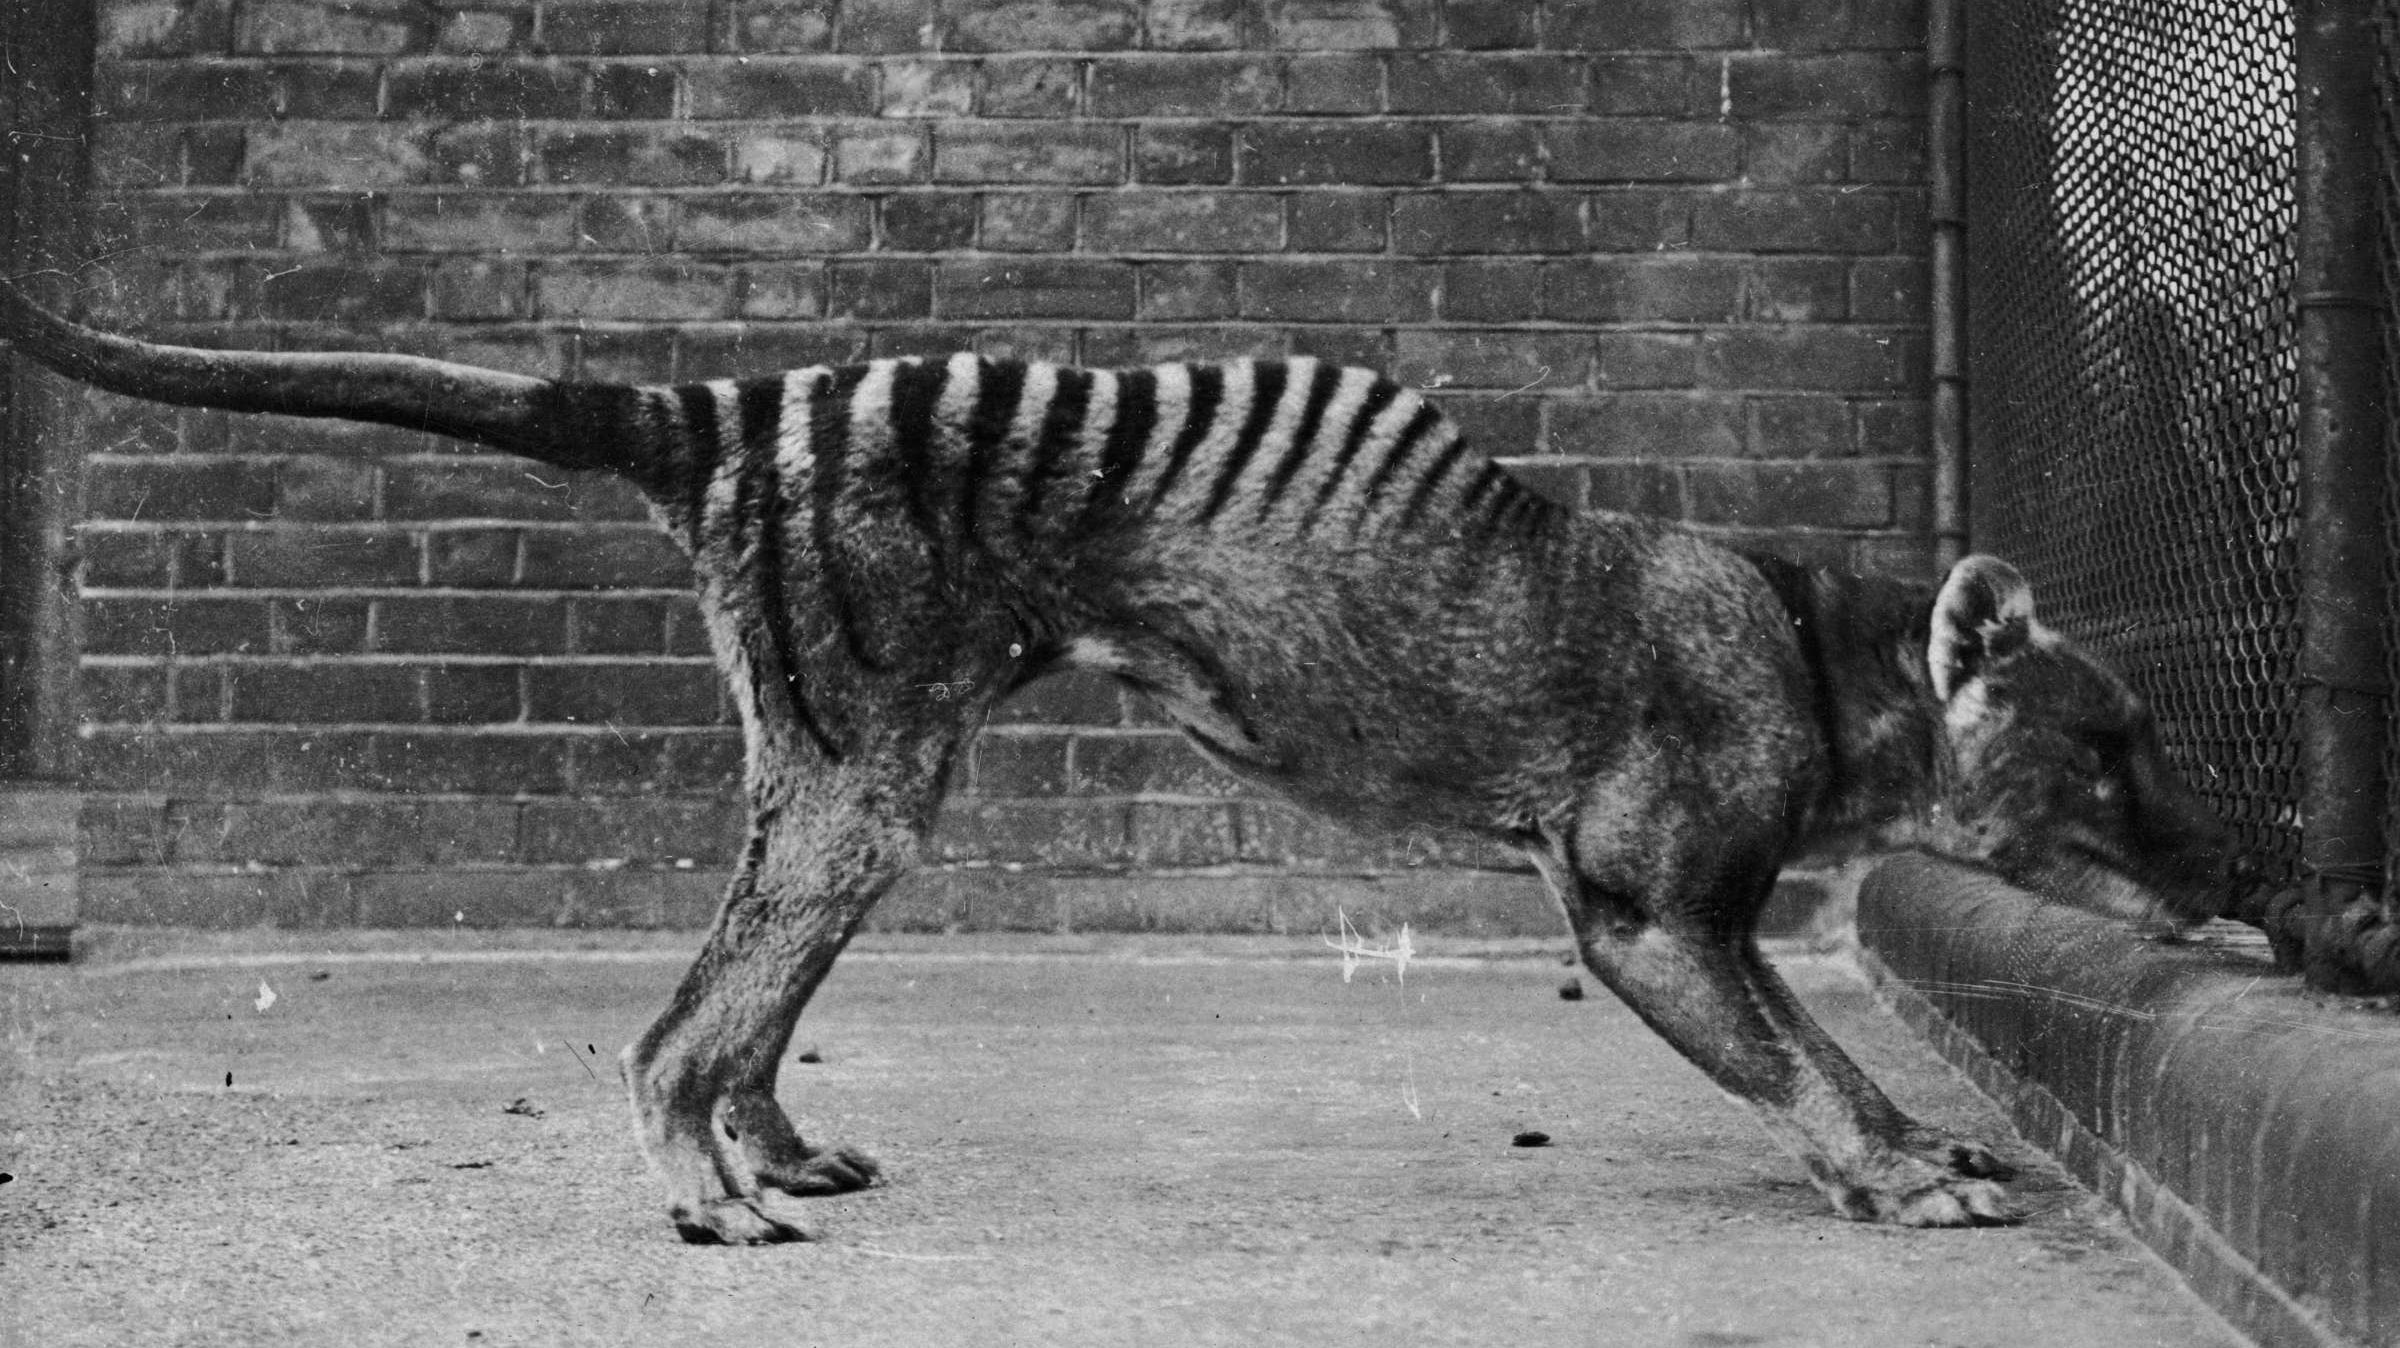 Researchers Just Unearthed 'Lost' Footage of the Extinct Tasmanian Tiger—Watch It Here